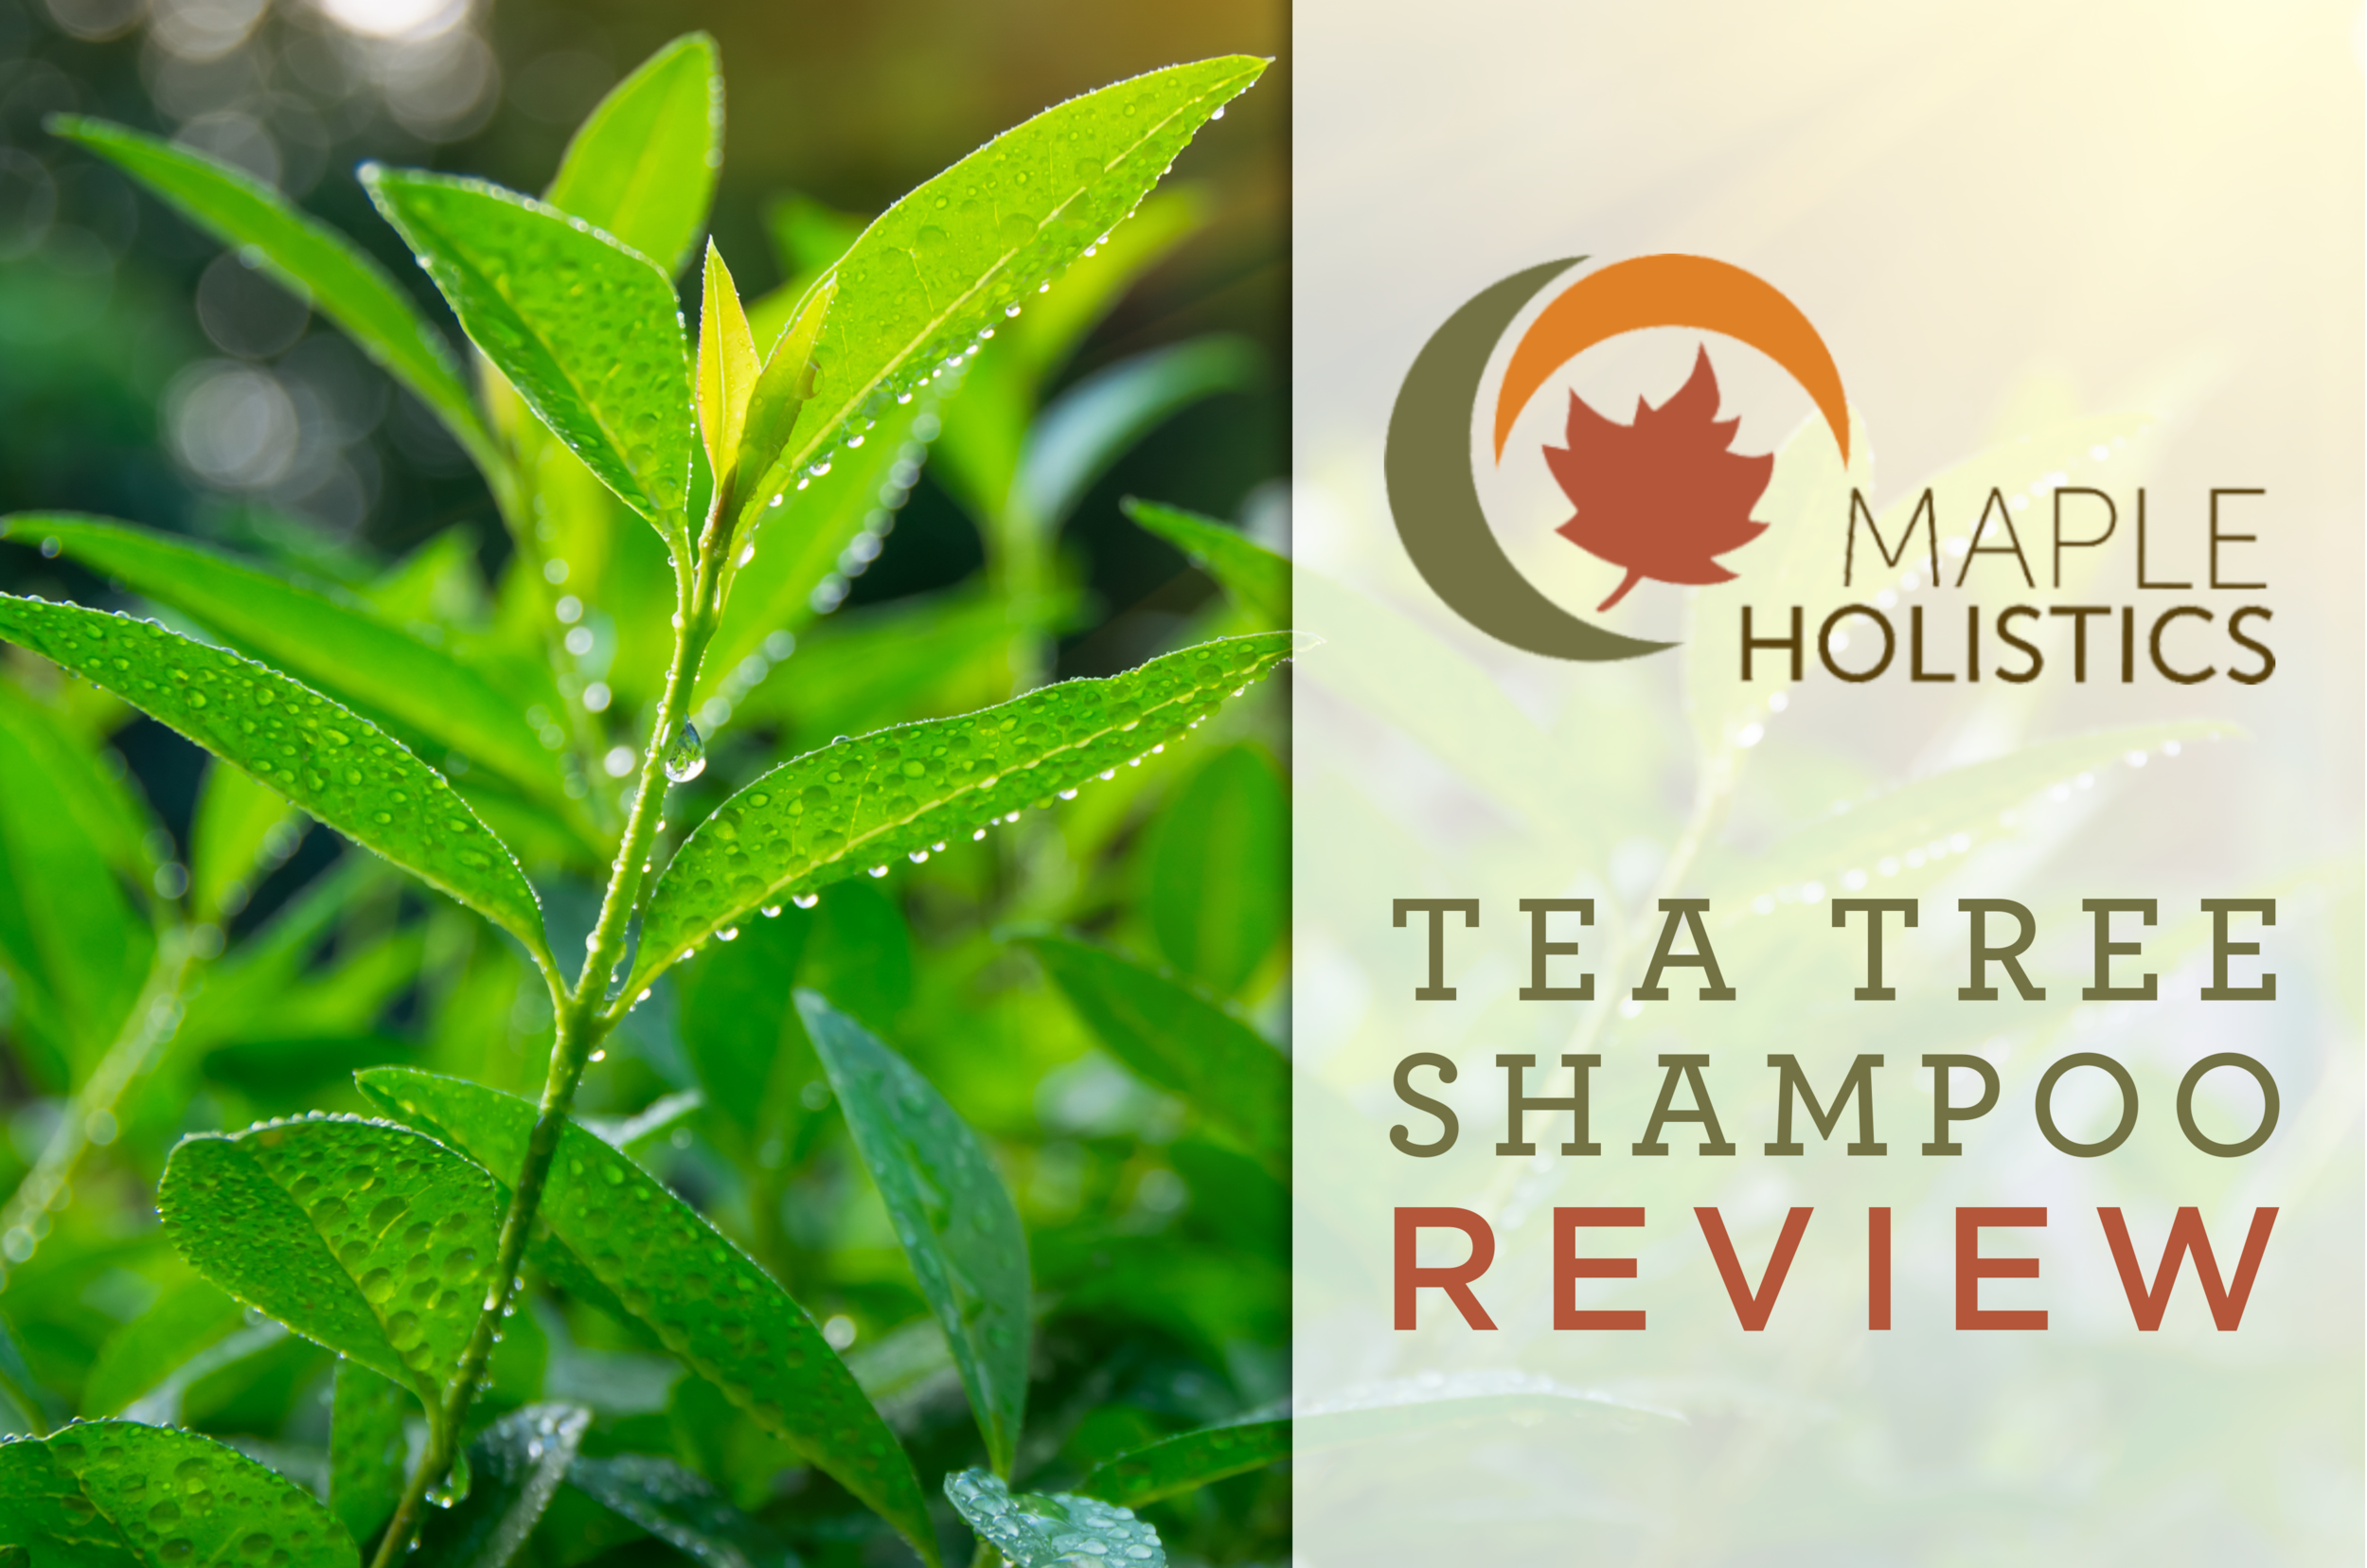 Maple Holistics Tea Tree Shampoo Review - Modern Southerner